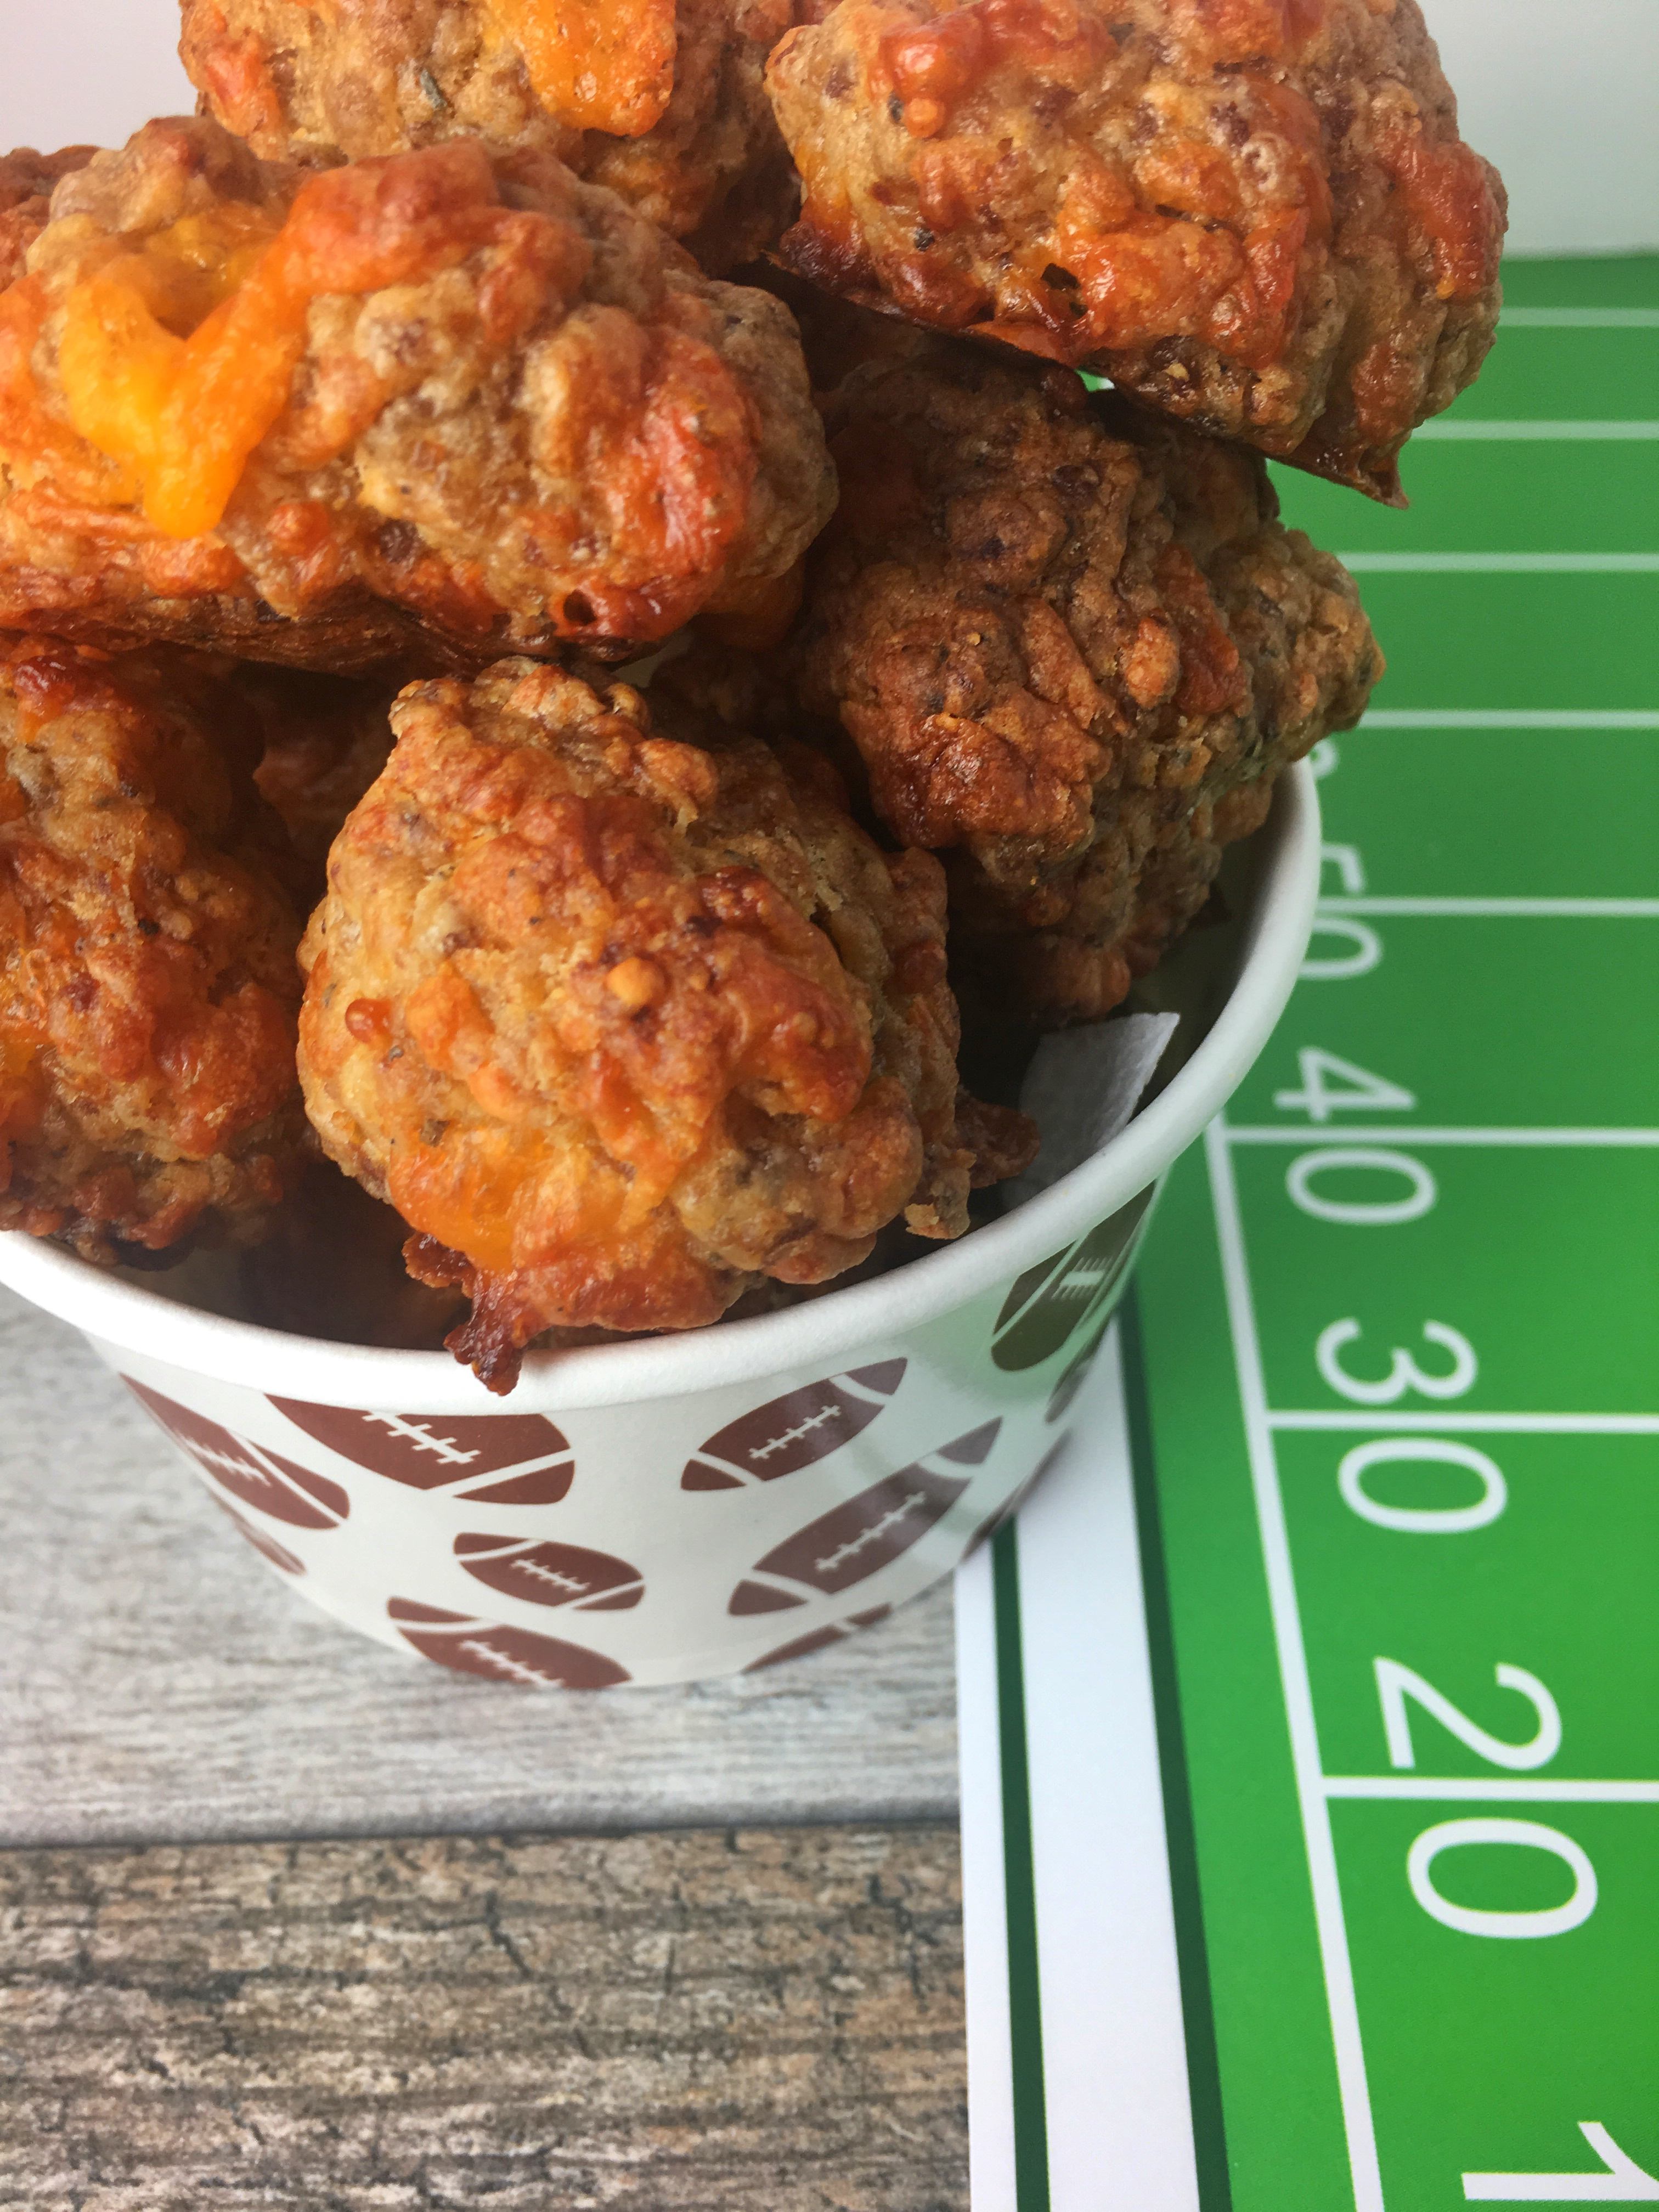 Sideline Sausage Balls for your football game day tailgate party!